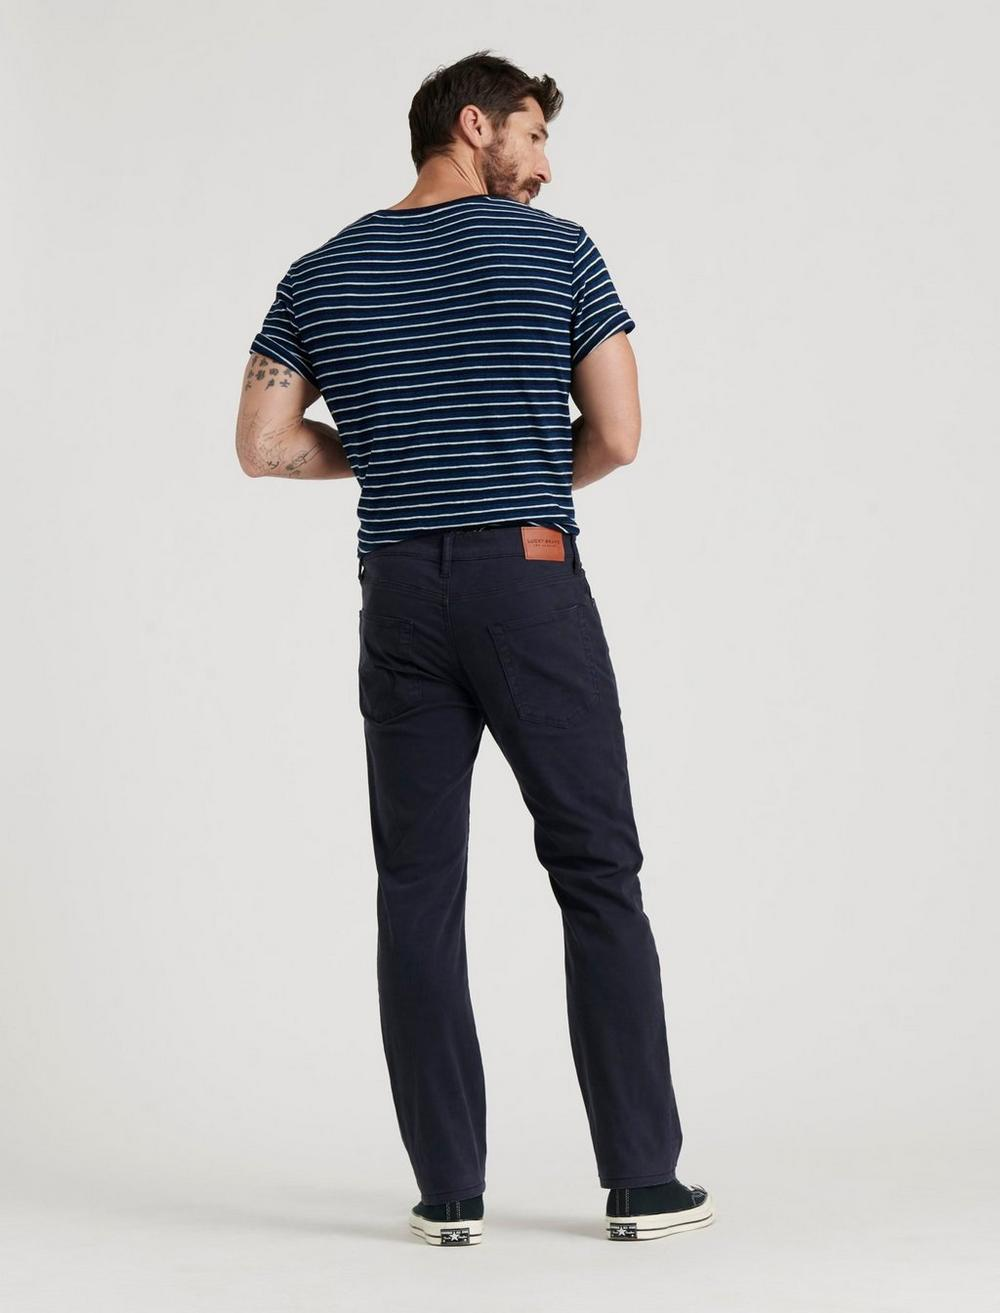 223 STRAIGHT SATEEN STRETCH JEAN, image 4